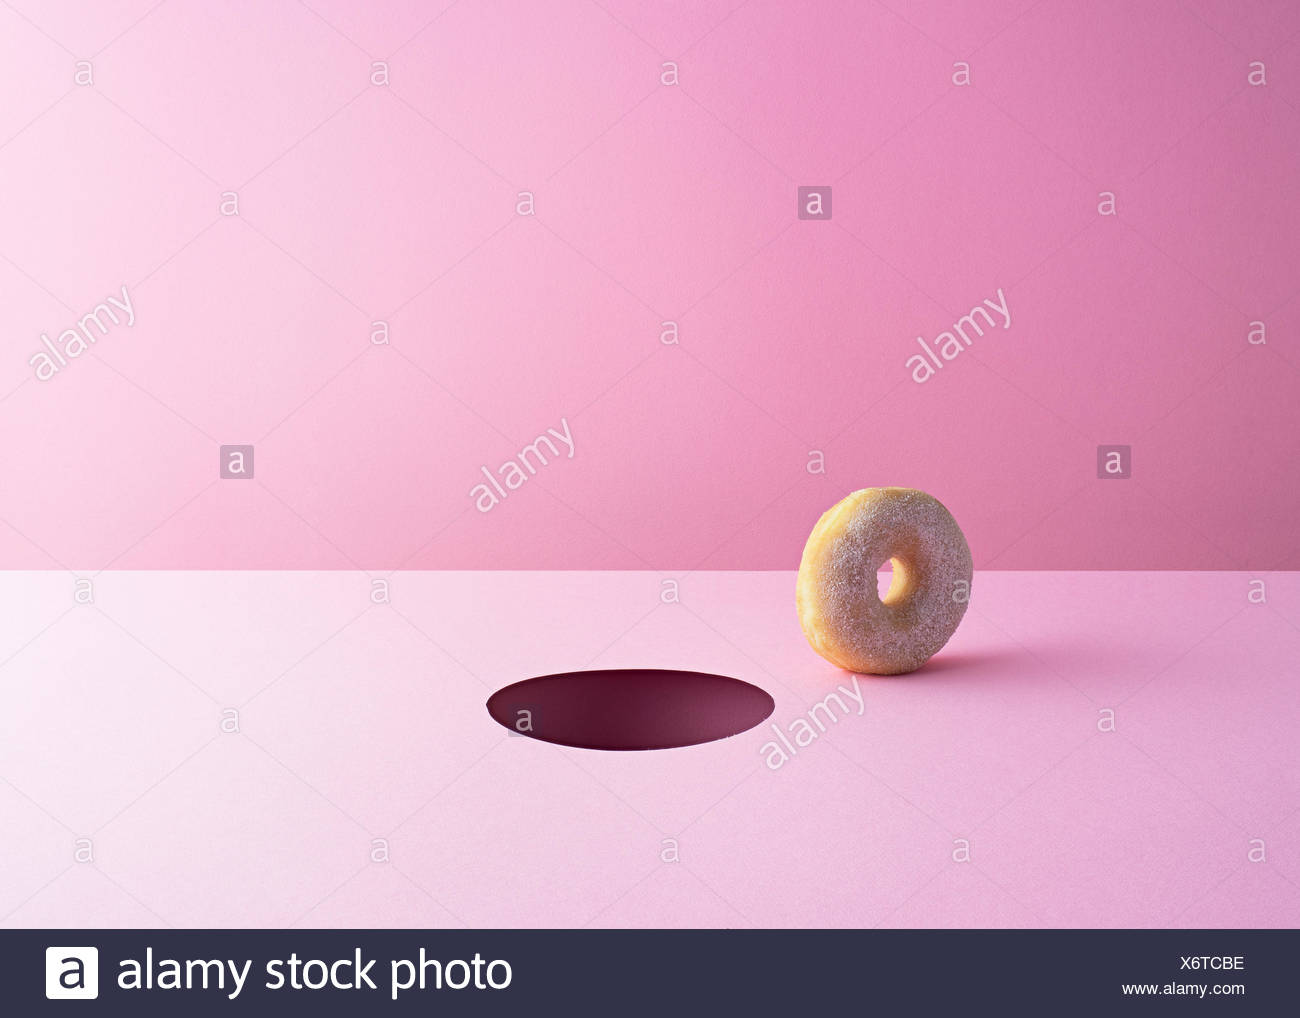 Doughnut and hole on pink ground - Stock Image